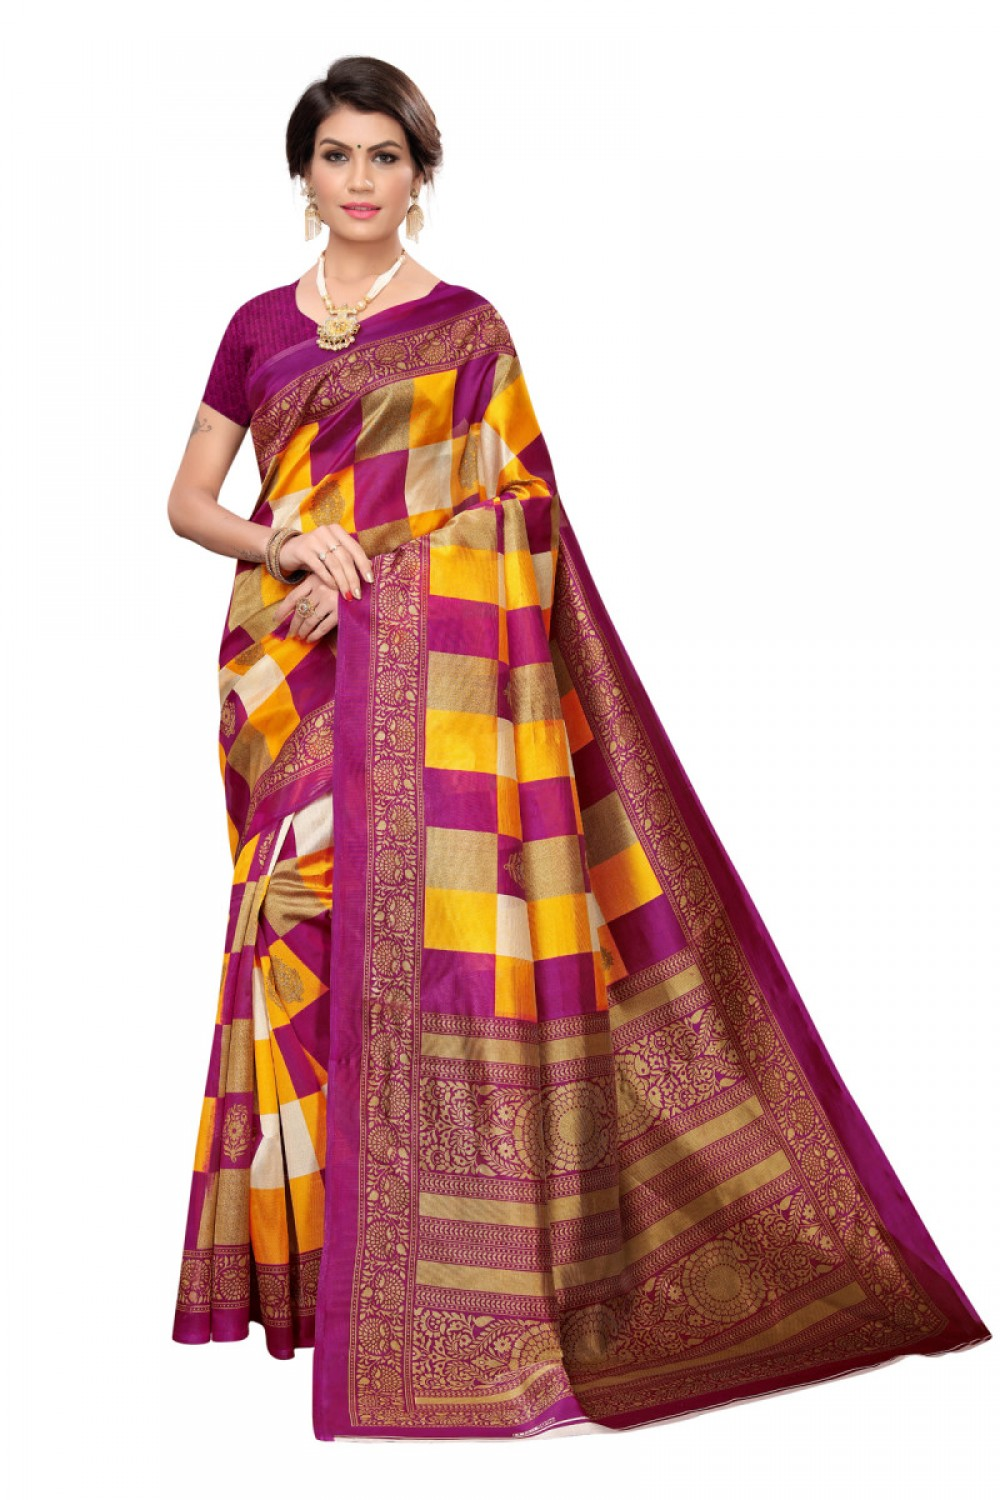 Attarctive Purple Colour Casual wearDenting saree